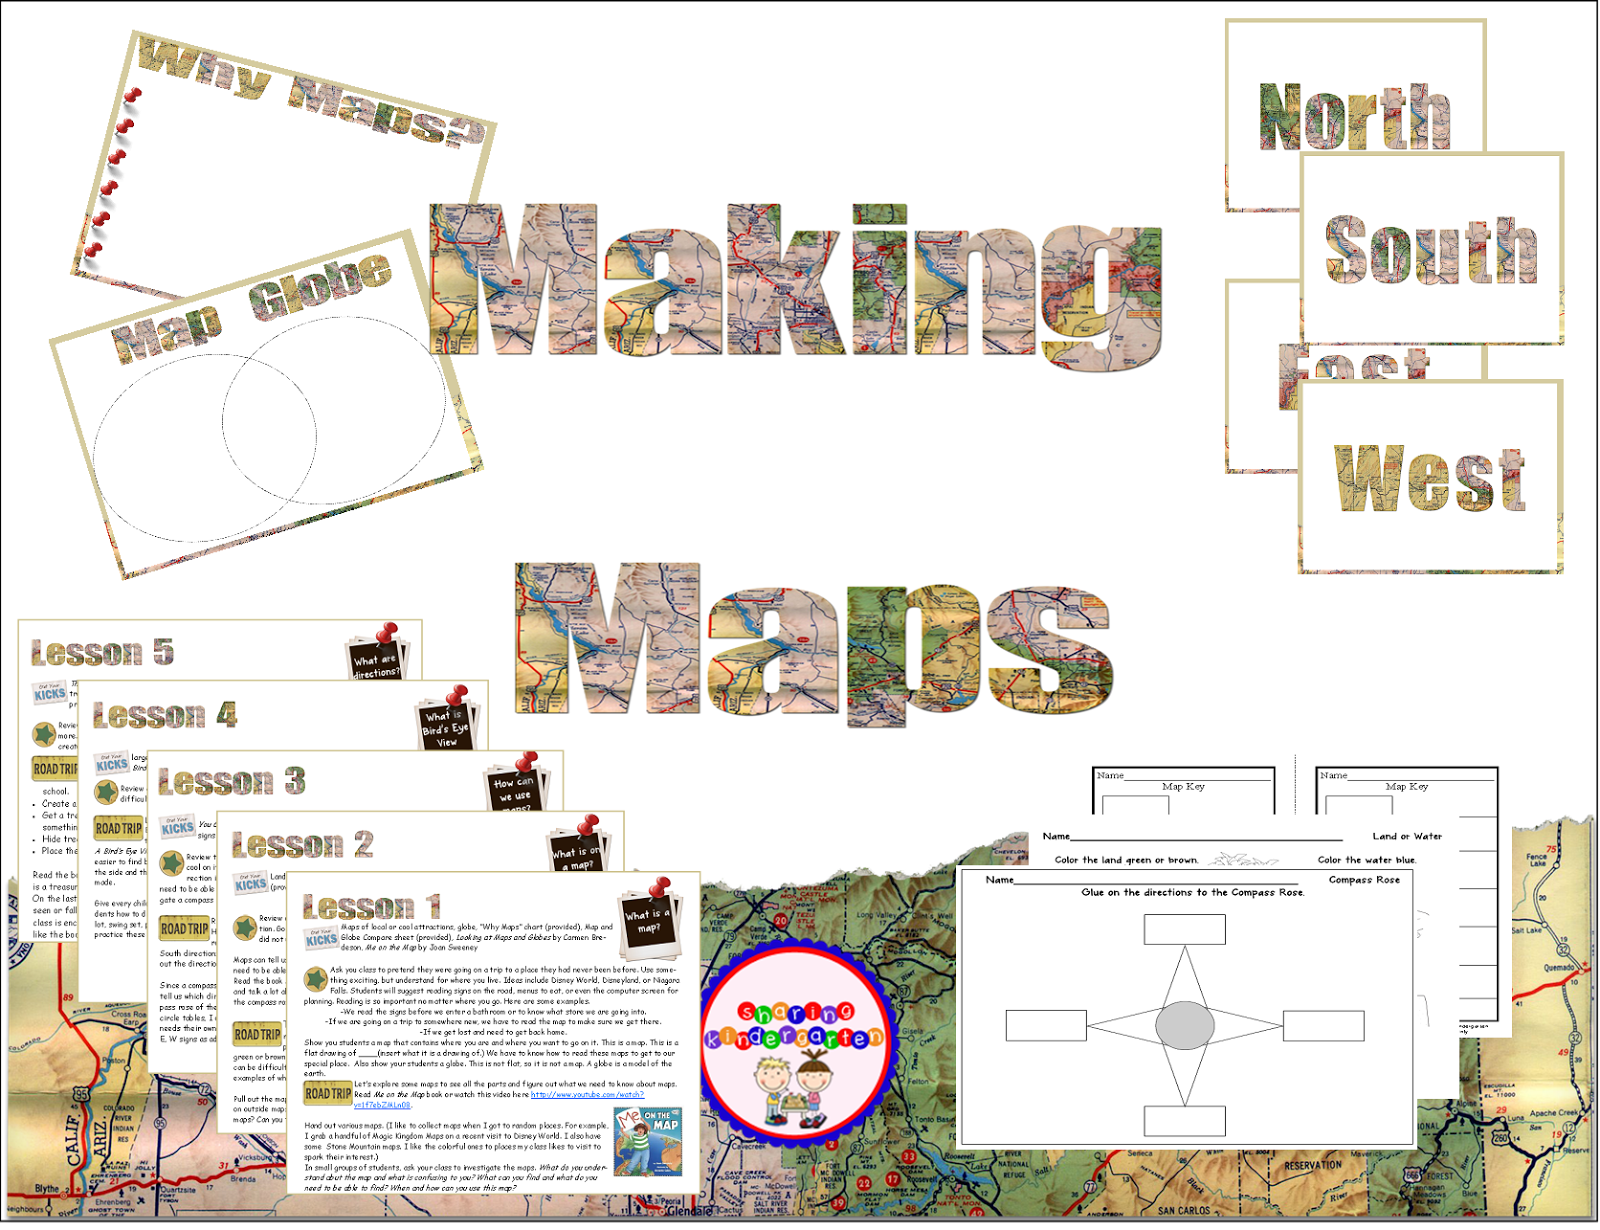 https://www.teacherspayteachers.com/Product/Making-Maps-Lesson-Plans-283176